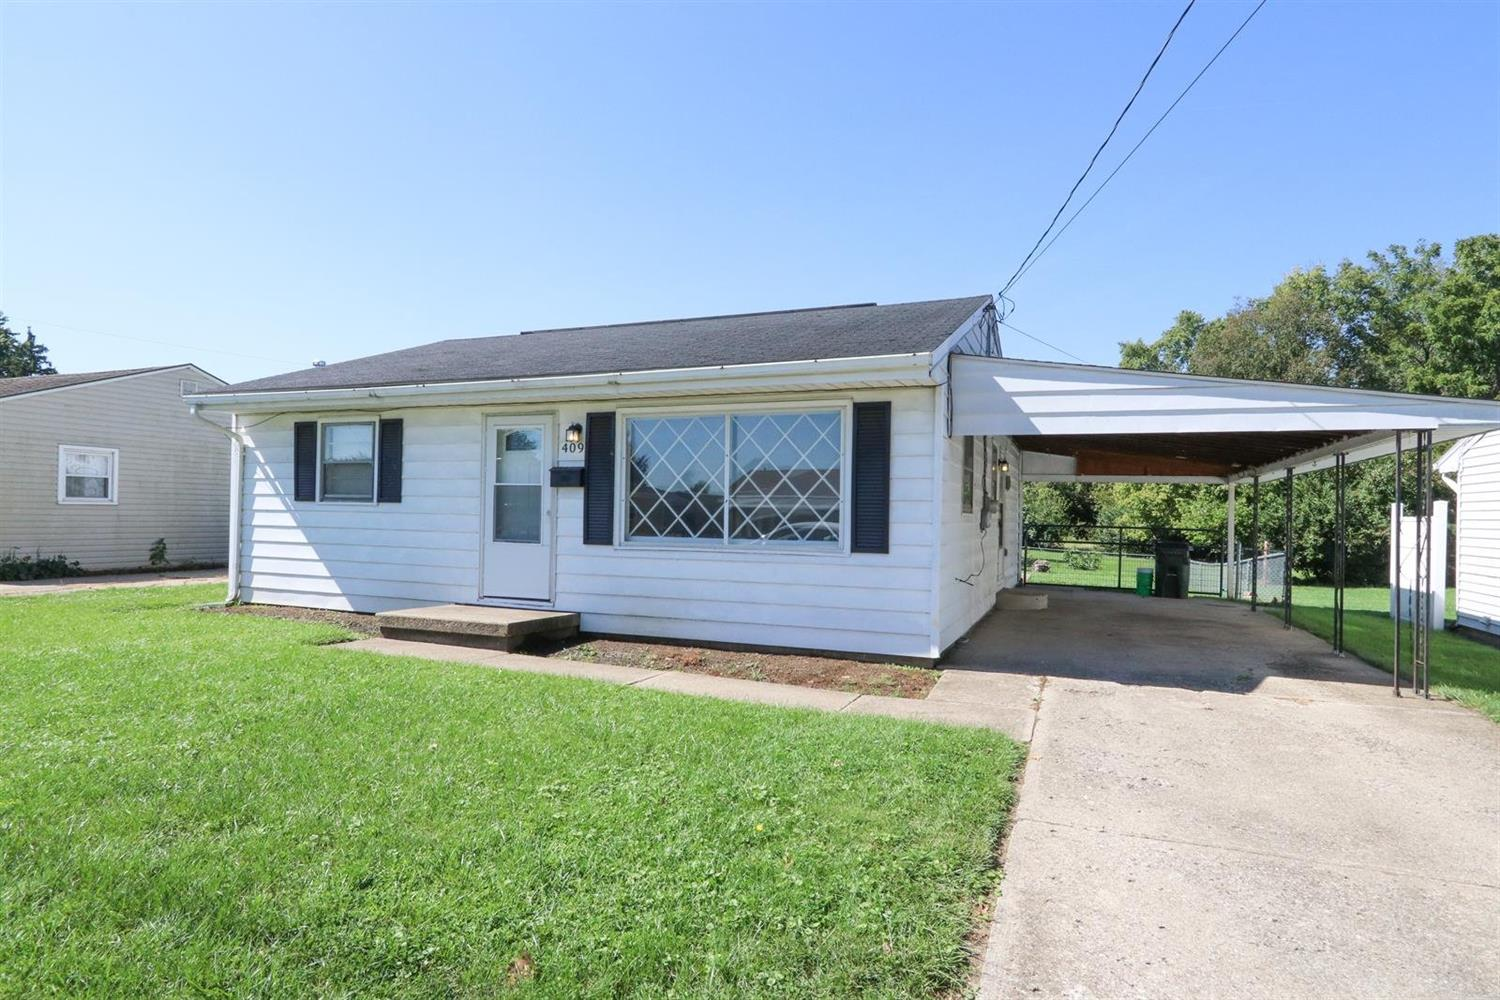 Property for sale at 409 Third Street, Trenton,  OH 45067